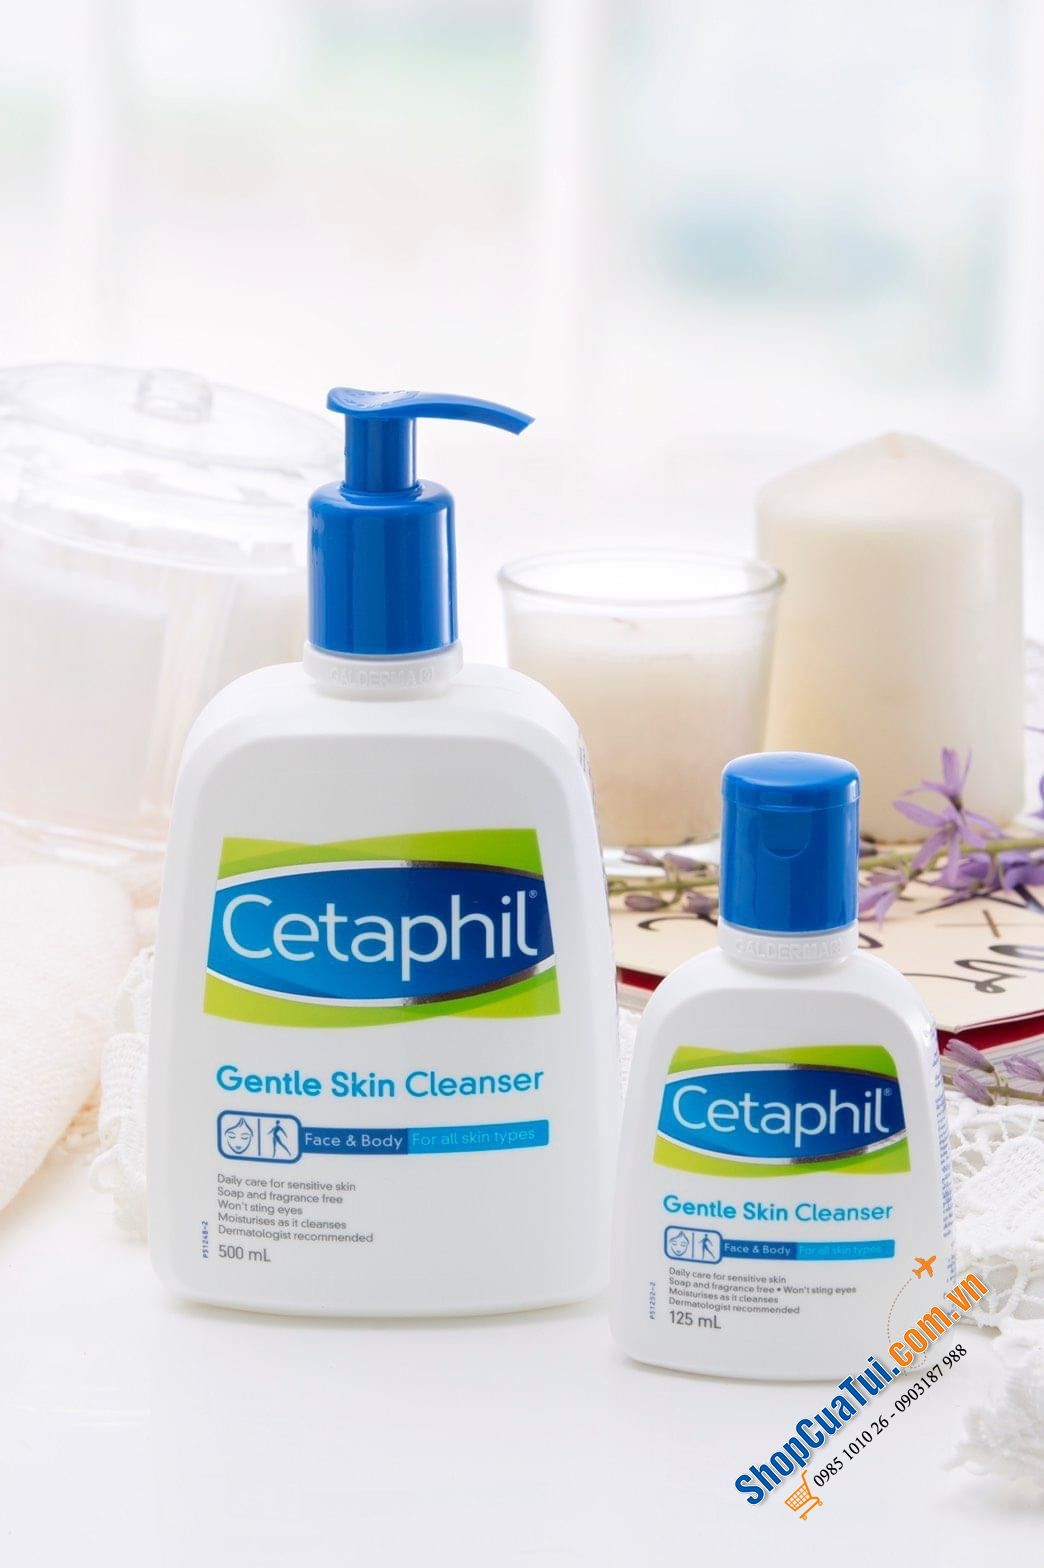 Sữa Tắm, rửa mặt Cetaphil Gentle Skin Cleanser for Face & Body 250ml - Made in Canada